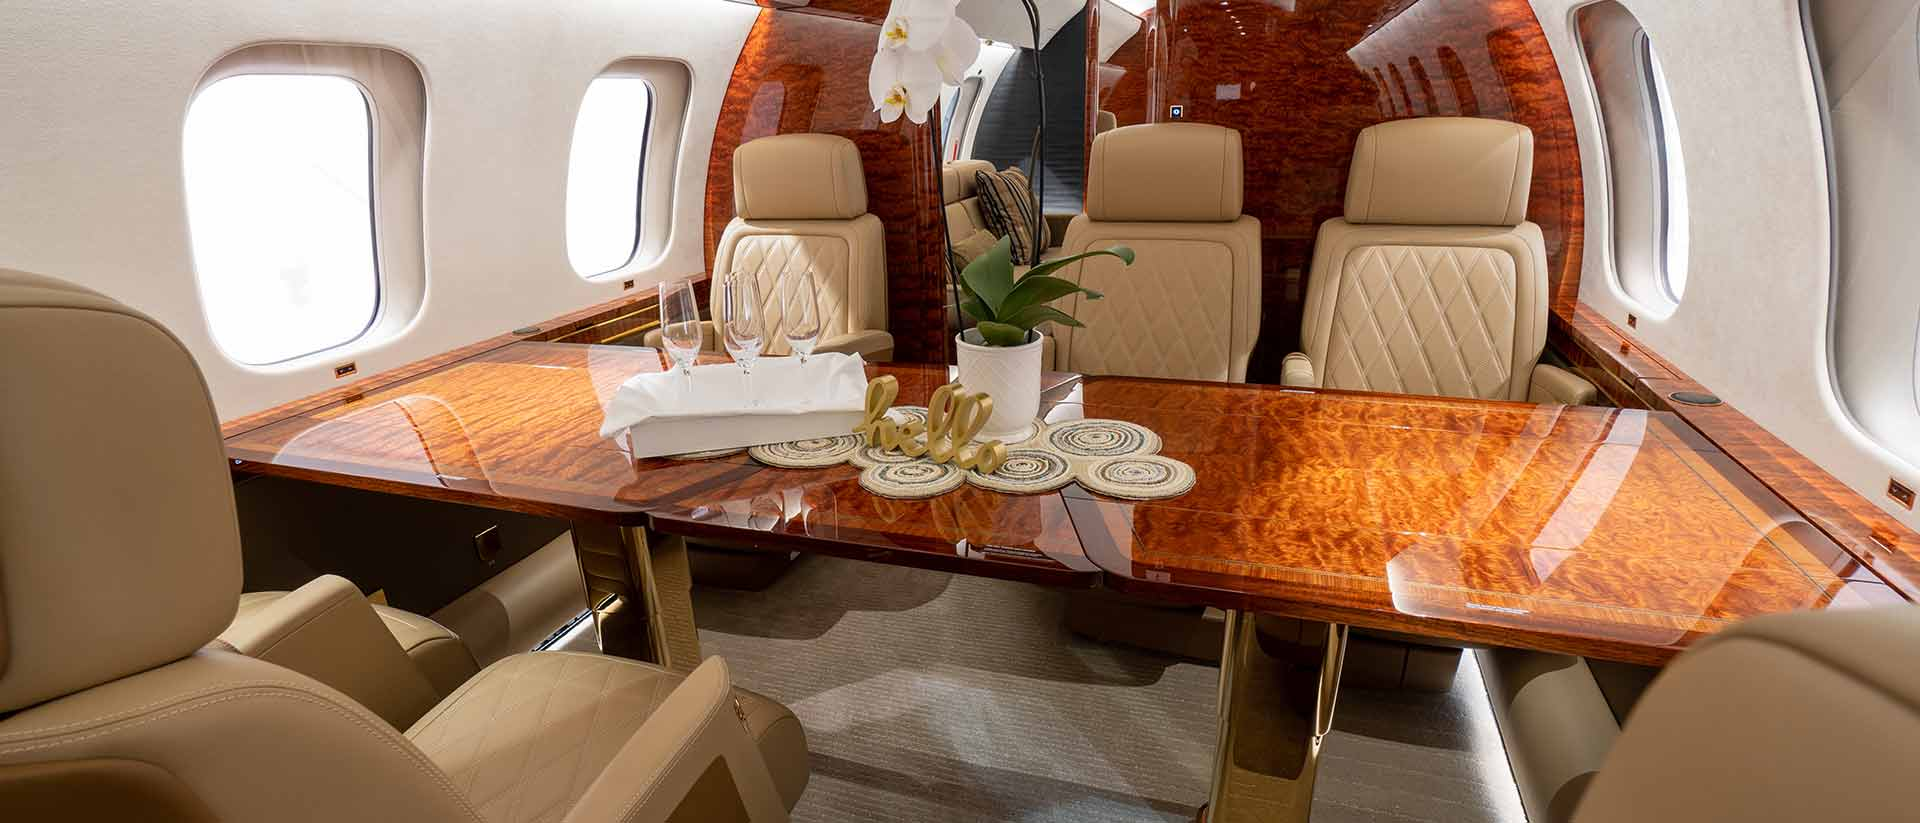 Global 7500 Dining for 6